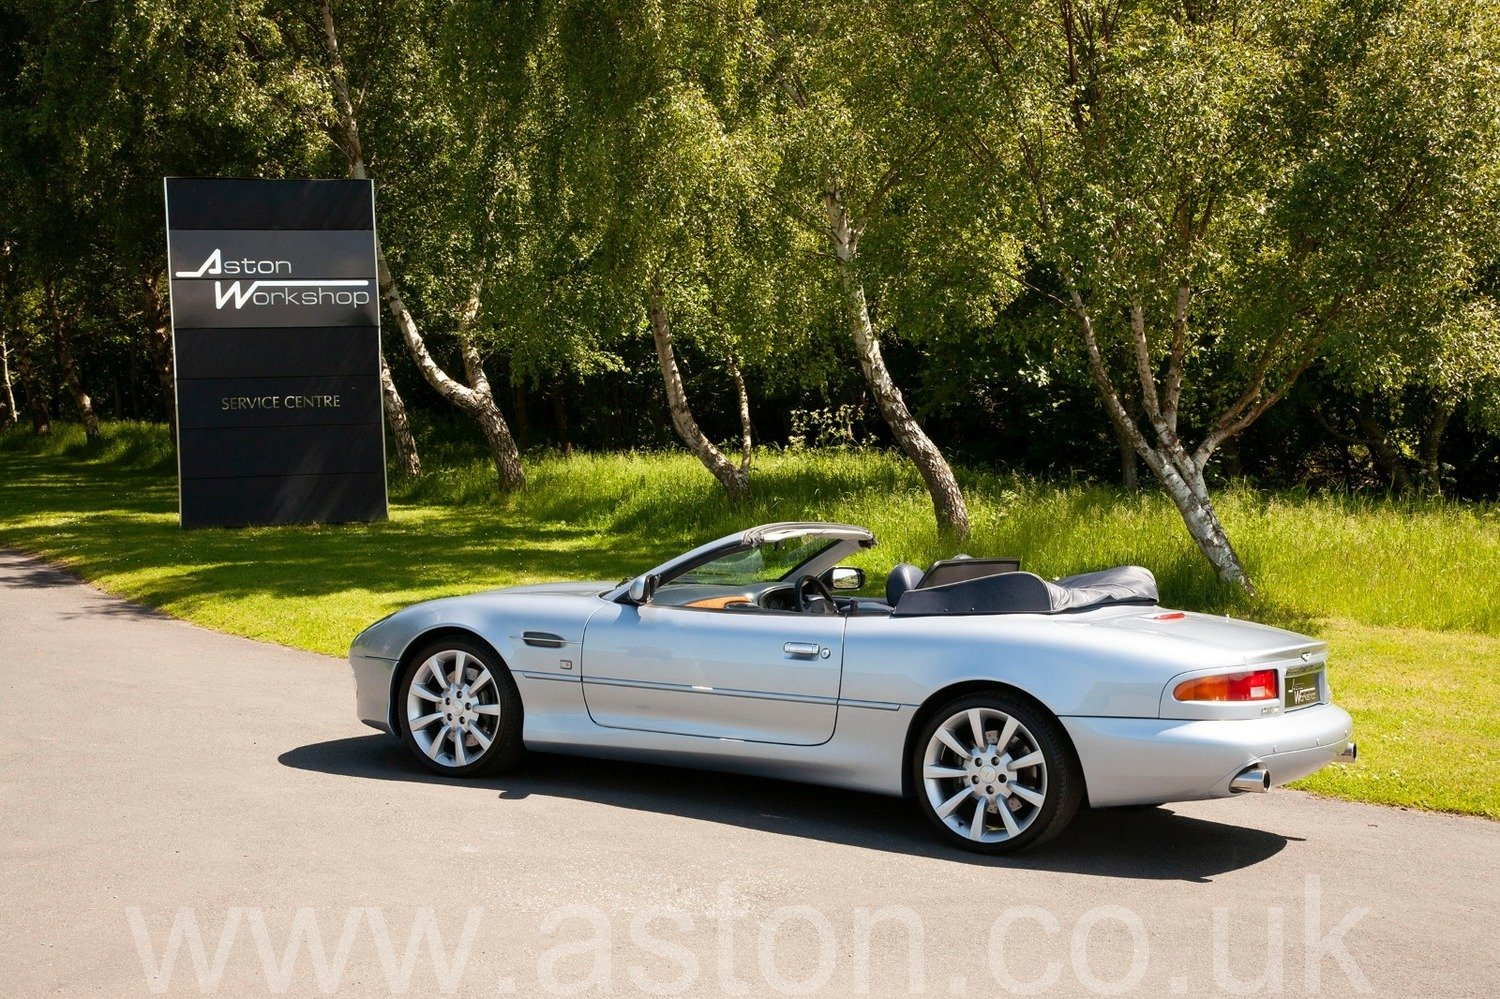 2003 2007 DB7 Vantage V12 Volante For Sale (picture 6 of 6)